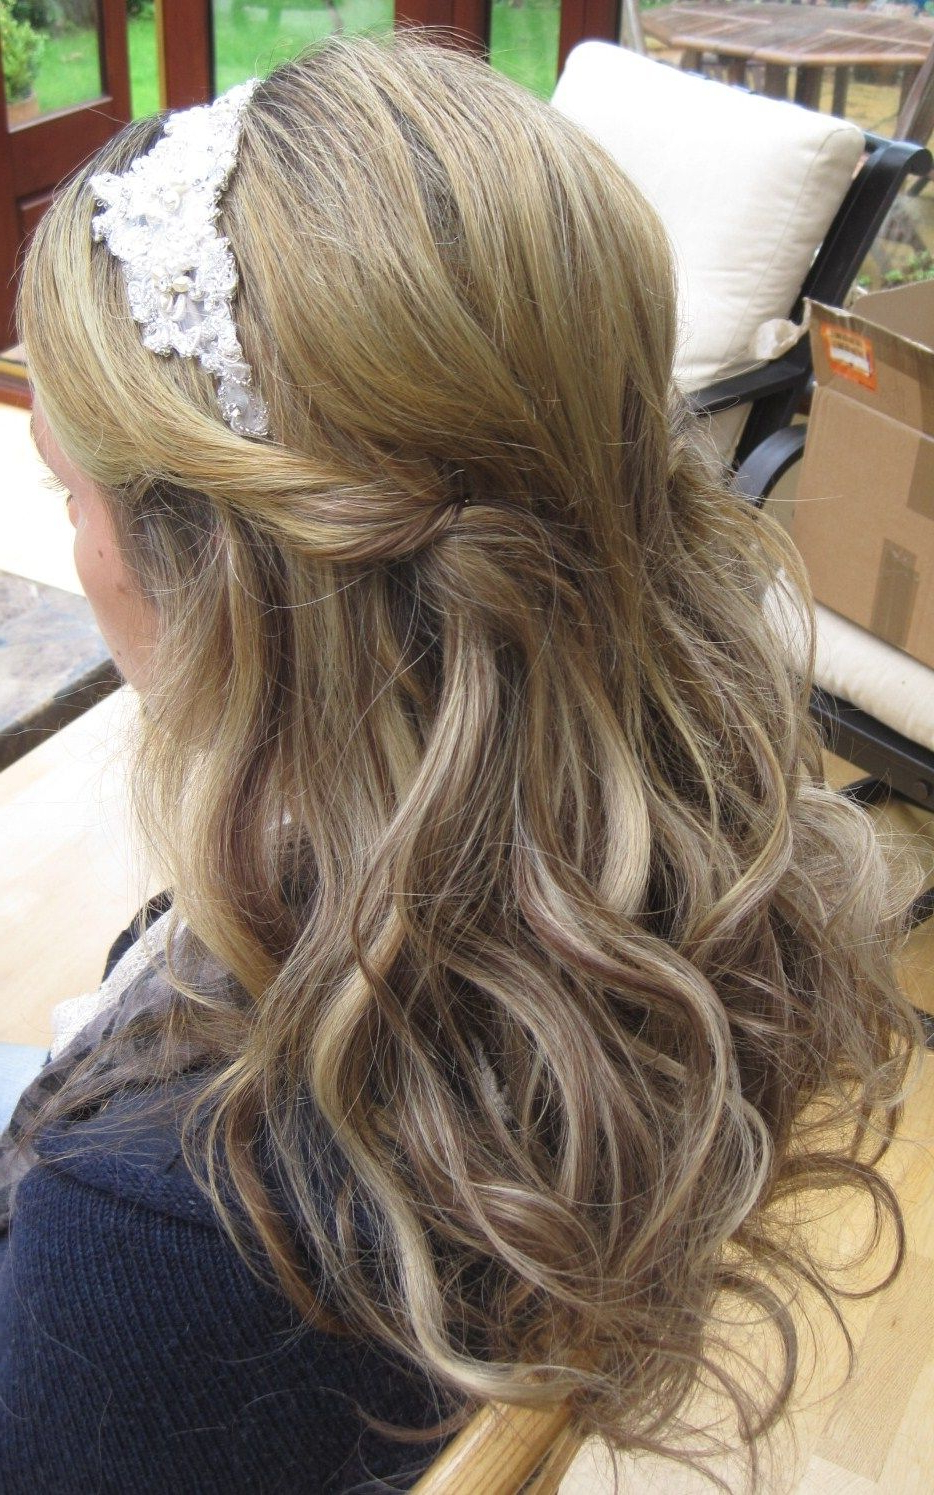 Recent Teased Half Up Bridal Hairstyles With Headband Throughout Fabulous Wedding Hairstyles Half Up For Thin Hair Model (Gallery 1 of 20)